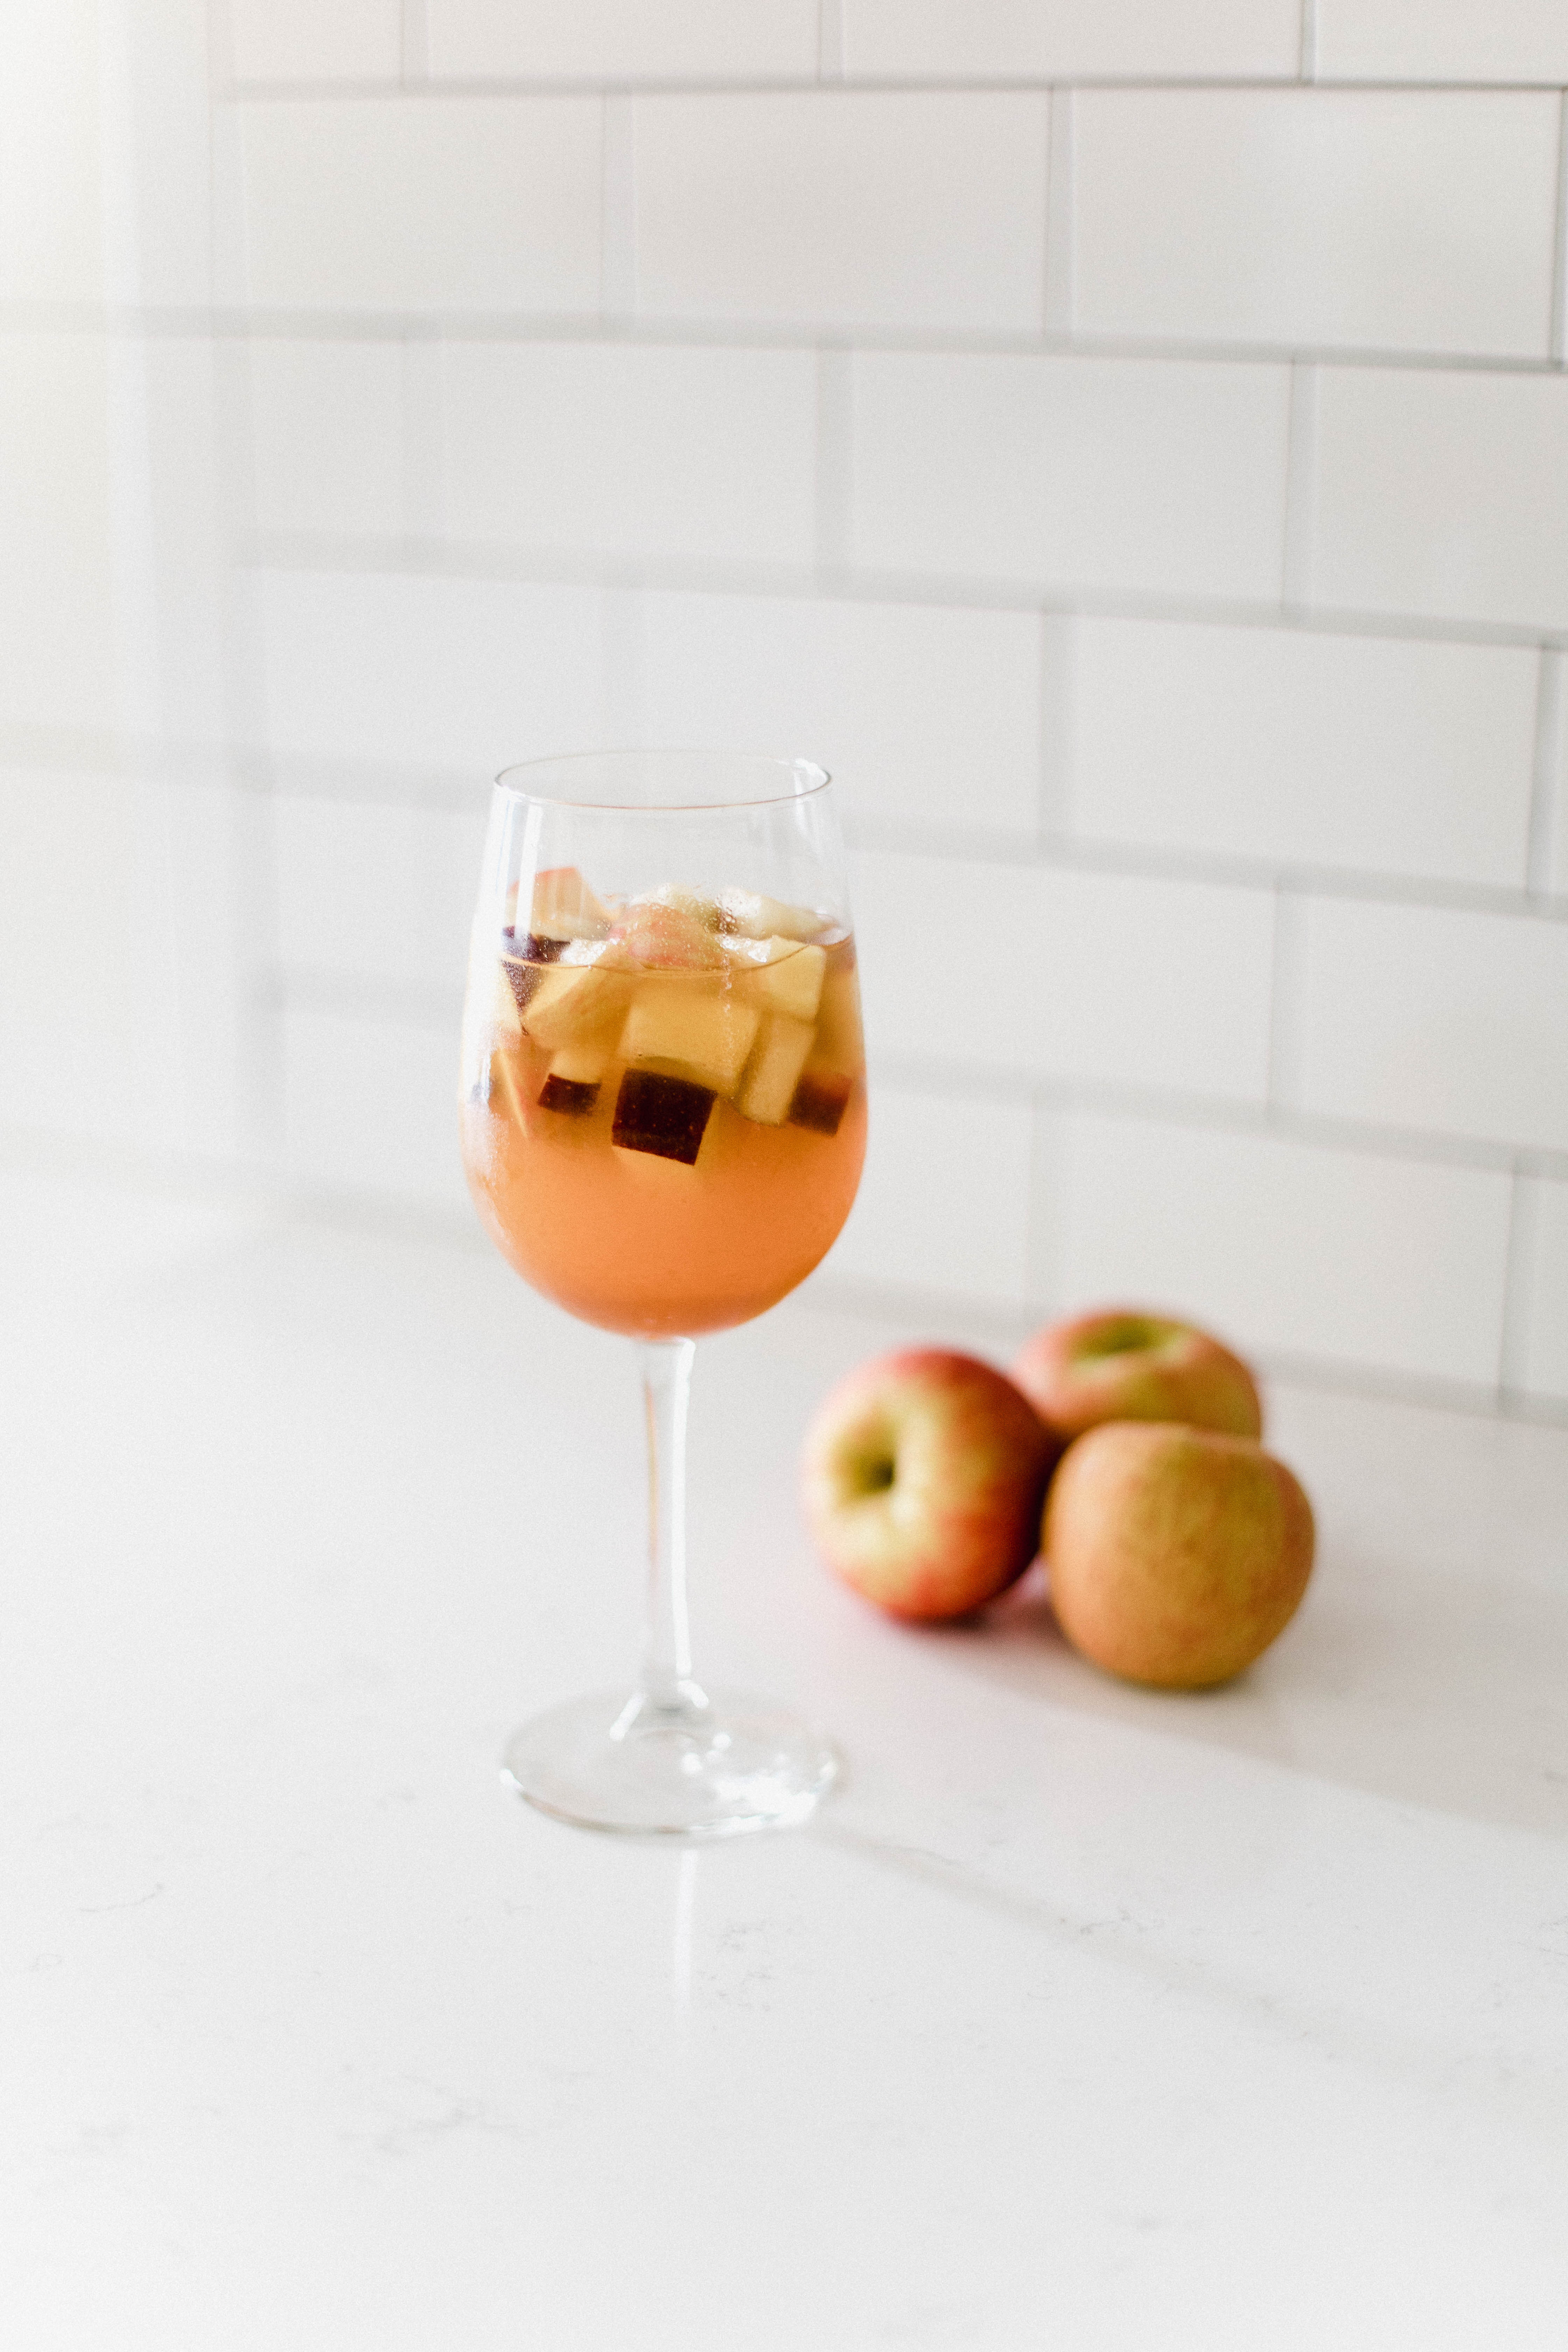 Connecticut life and style blogger Lauren McBride shares a Caramel Apple Cider Sangria recipe that's a fun, adult twist on a favorite fall beverage.